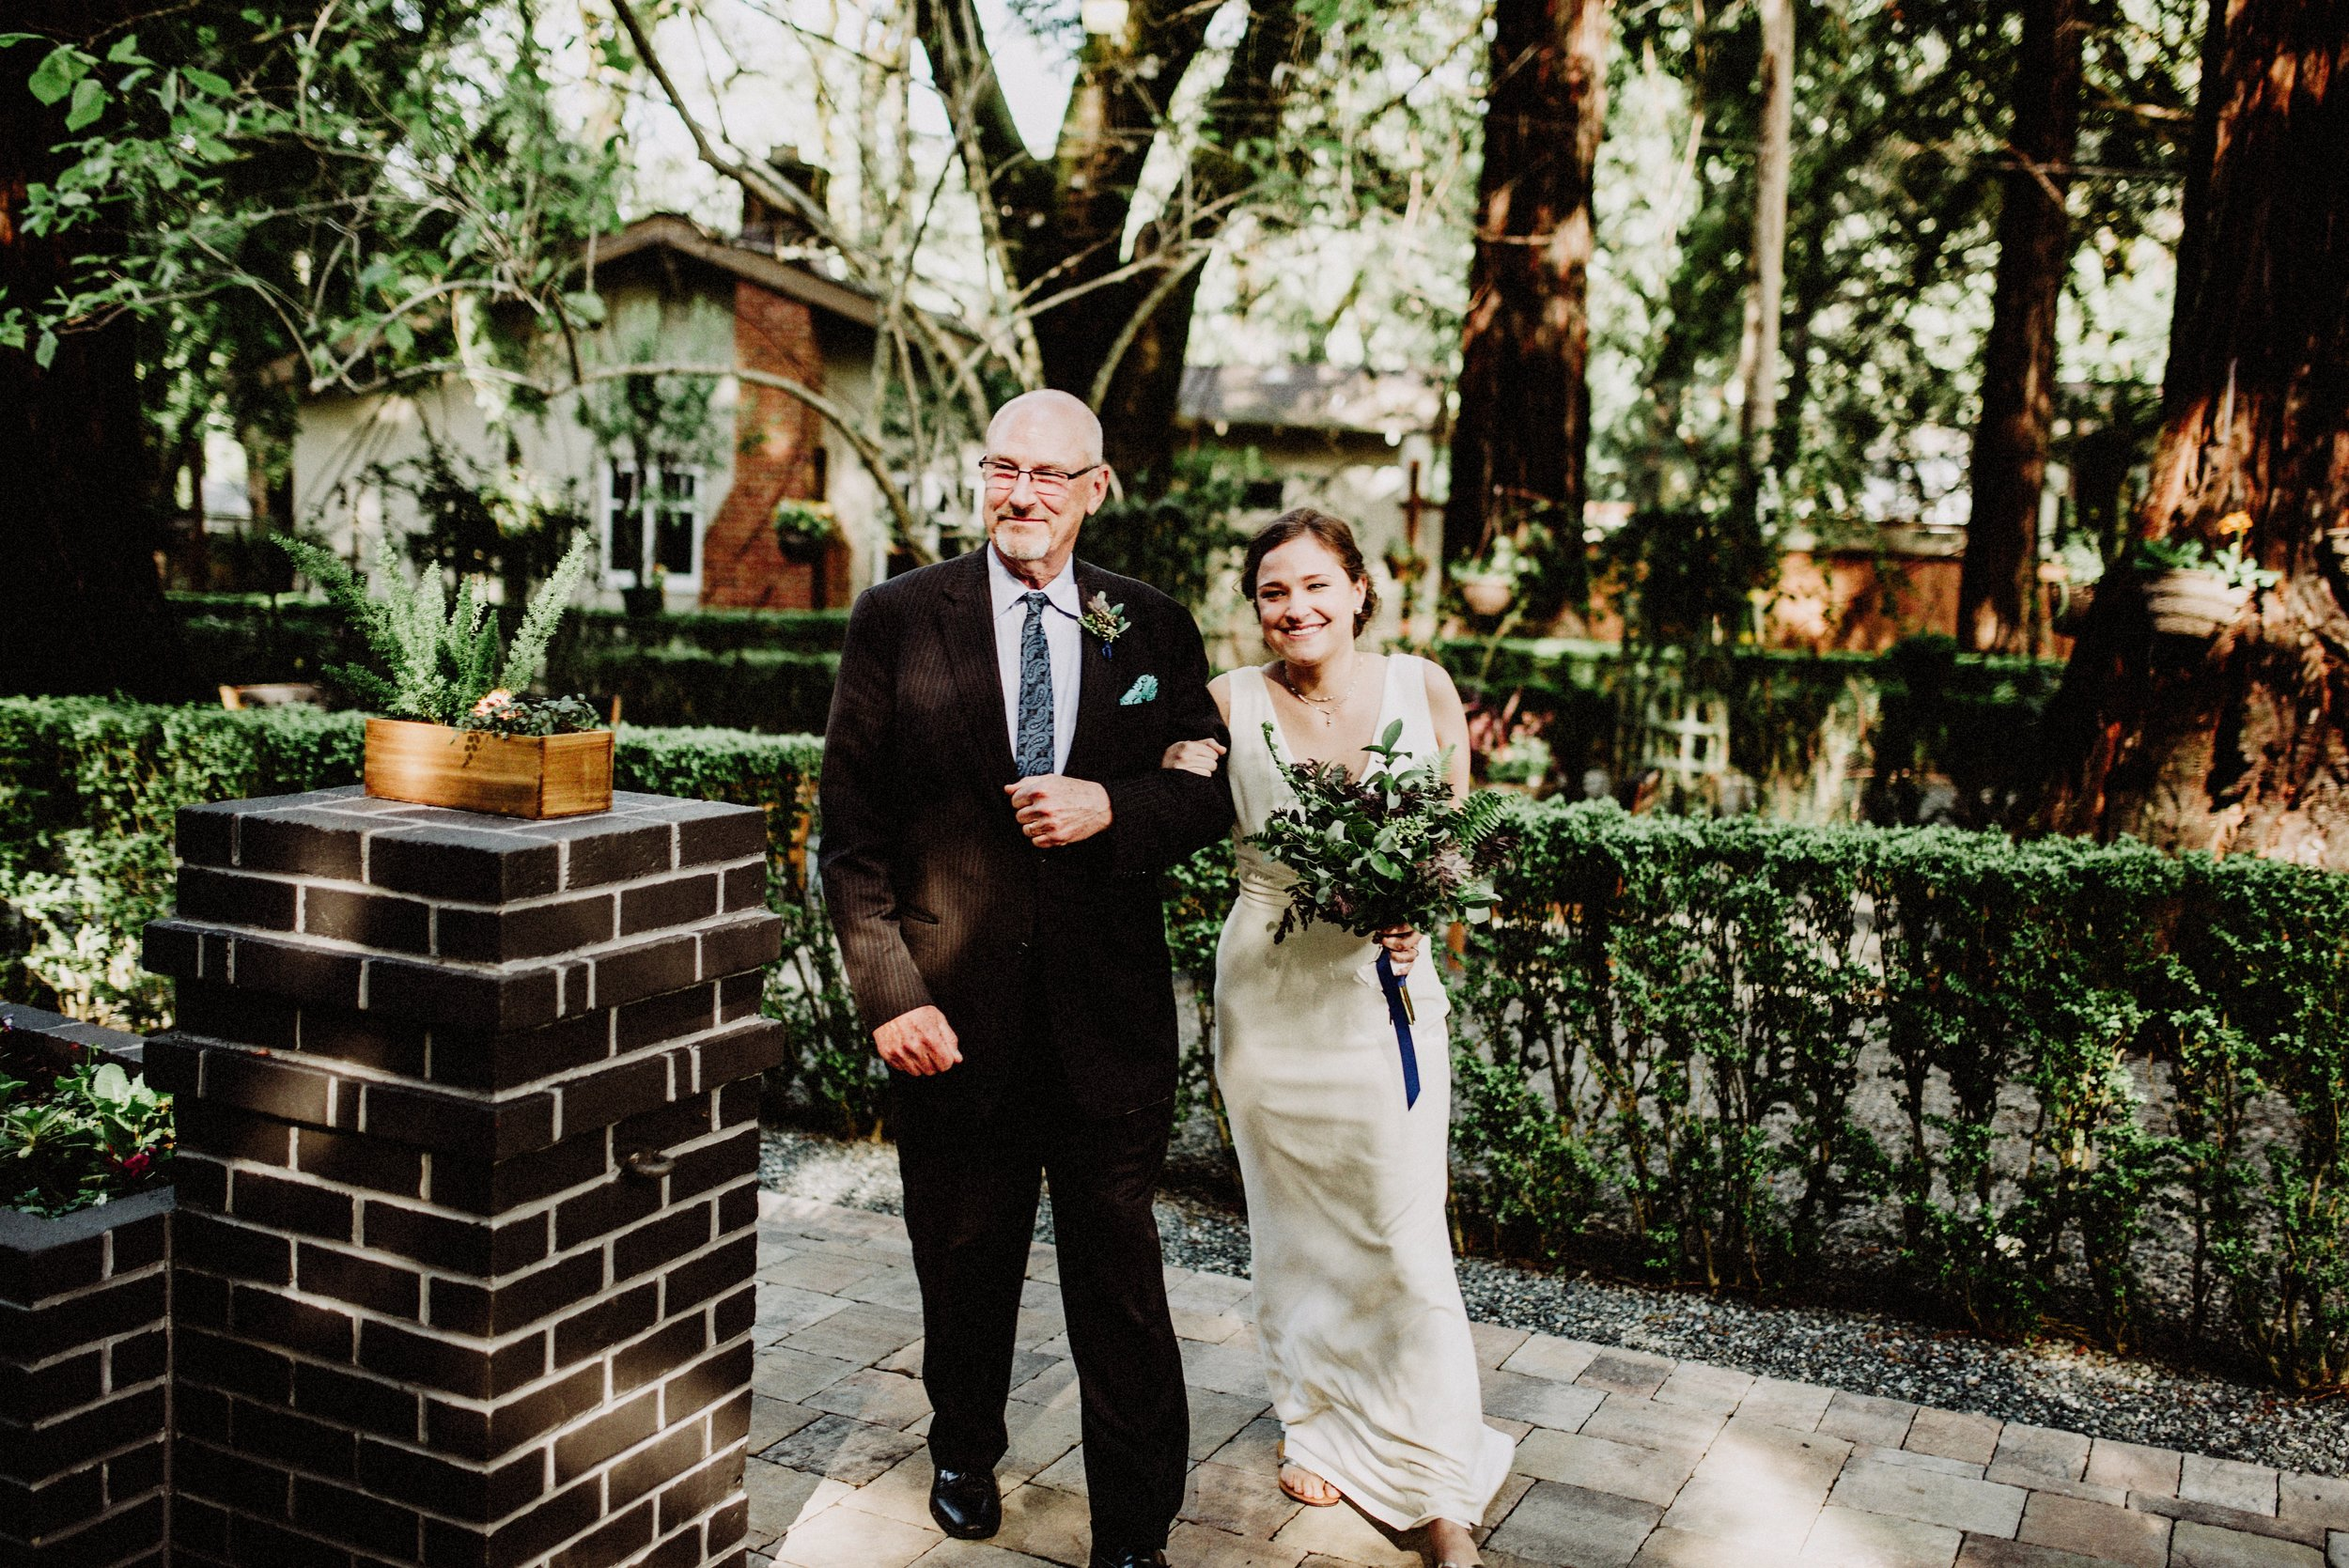 the redwood wedding of maggie and victor 233.jpg